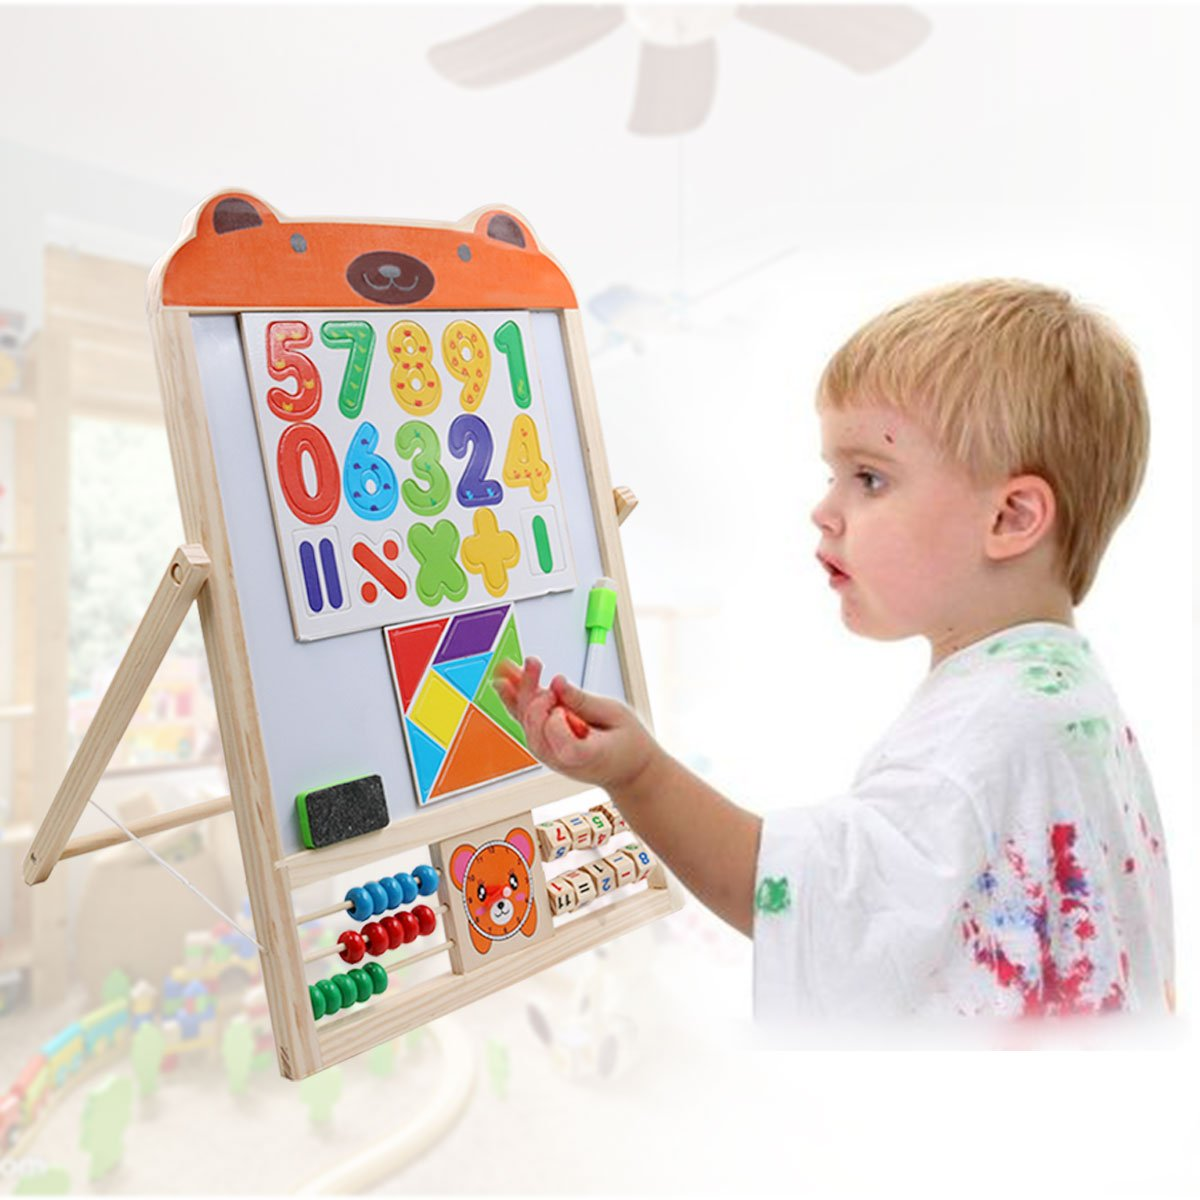 Yuhebaby Standing Art Easel for Kids, Wooden Tabletop Easel for Painting, Foldbale Double Sided Whiteboard /& Chalkboard with Dry Erase Markers, Magnetic Shapes, Numbers/(Bear/)